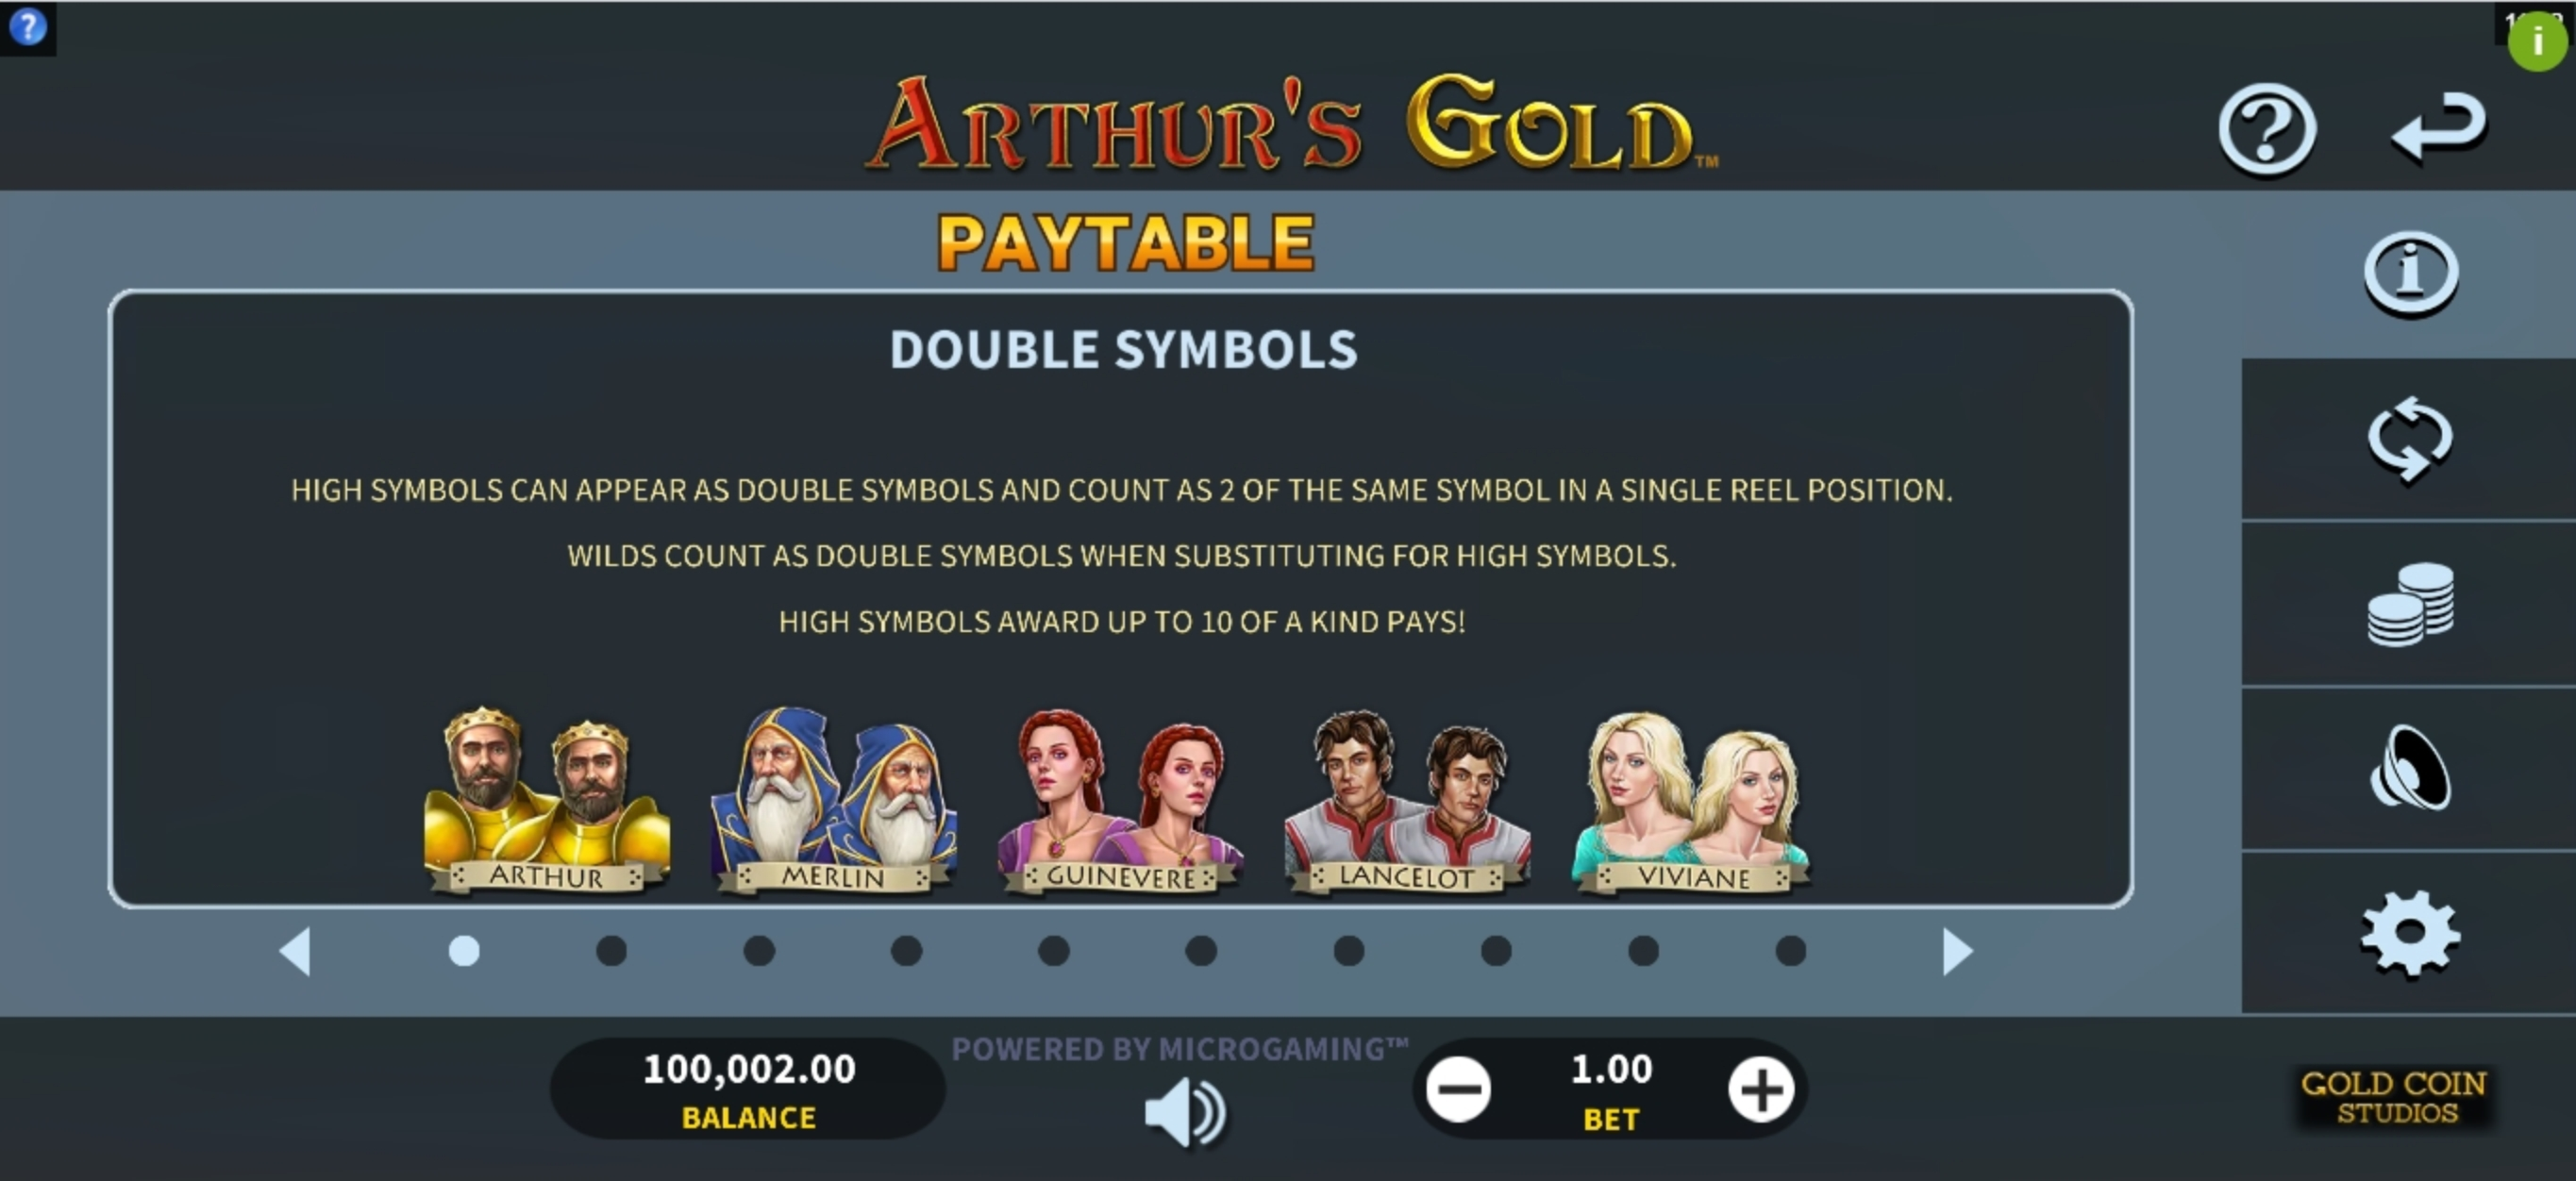 Info of Arthurs Gold Slot Game by Gold Coin Studios